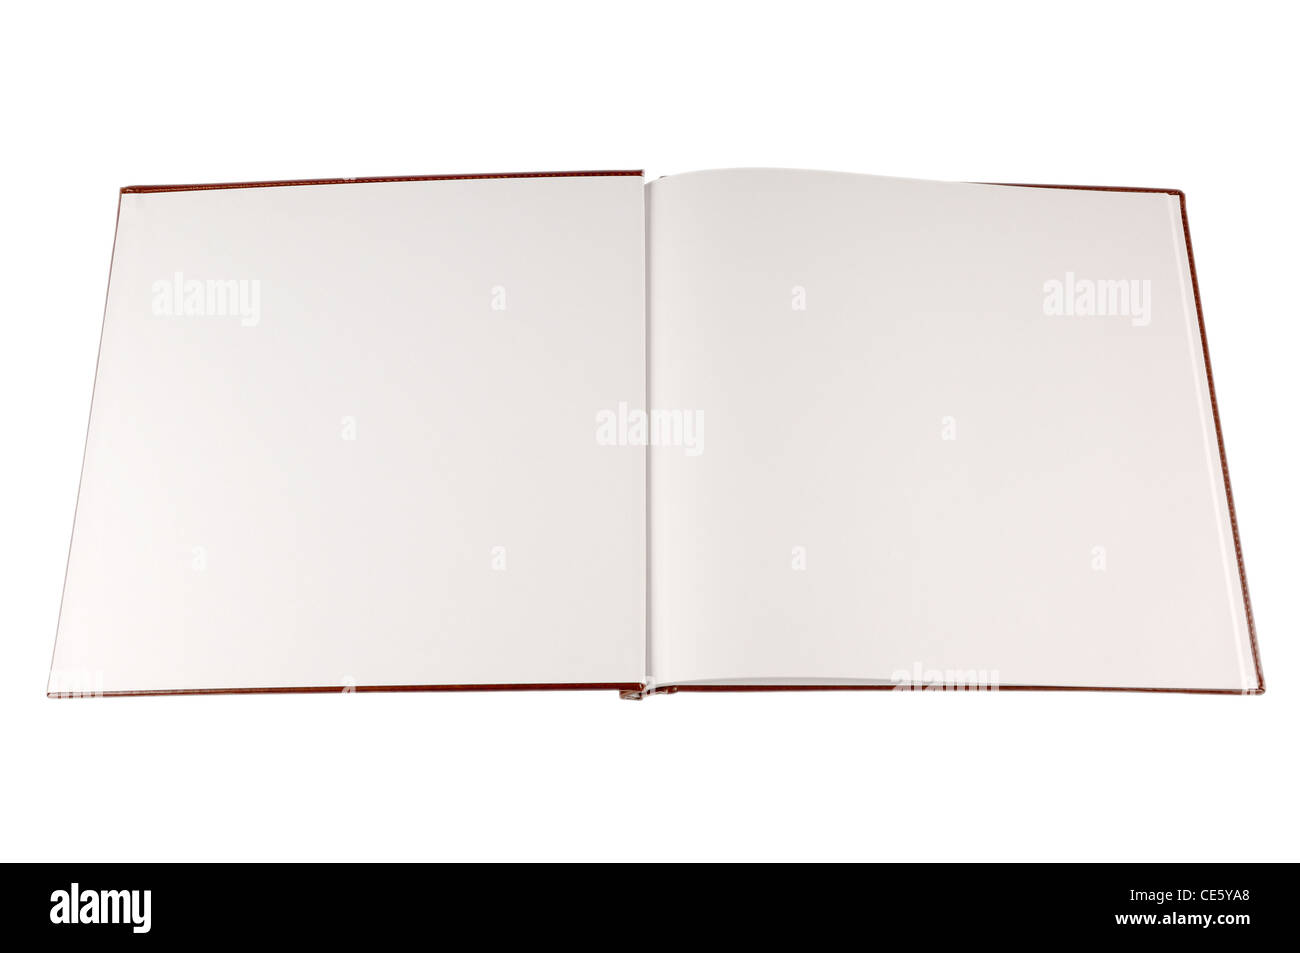 Open book with blank white pages isolated on white - Stock Image